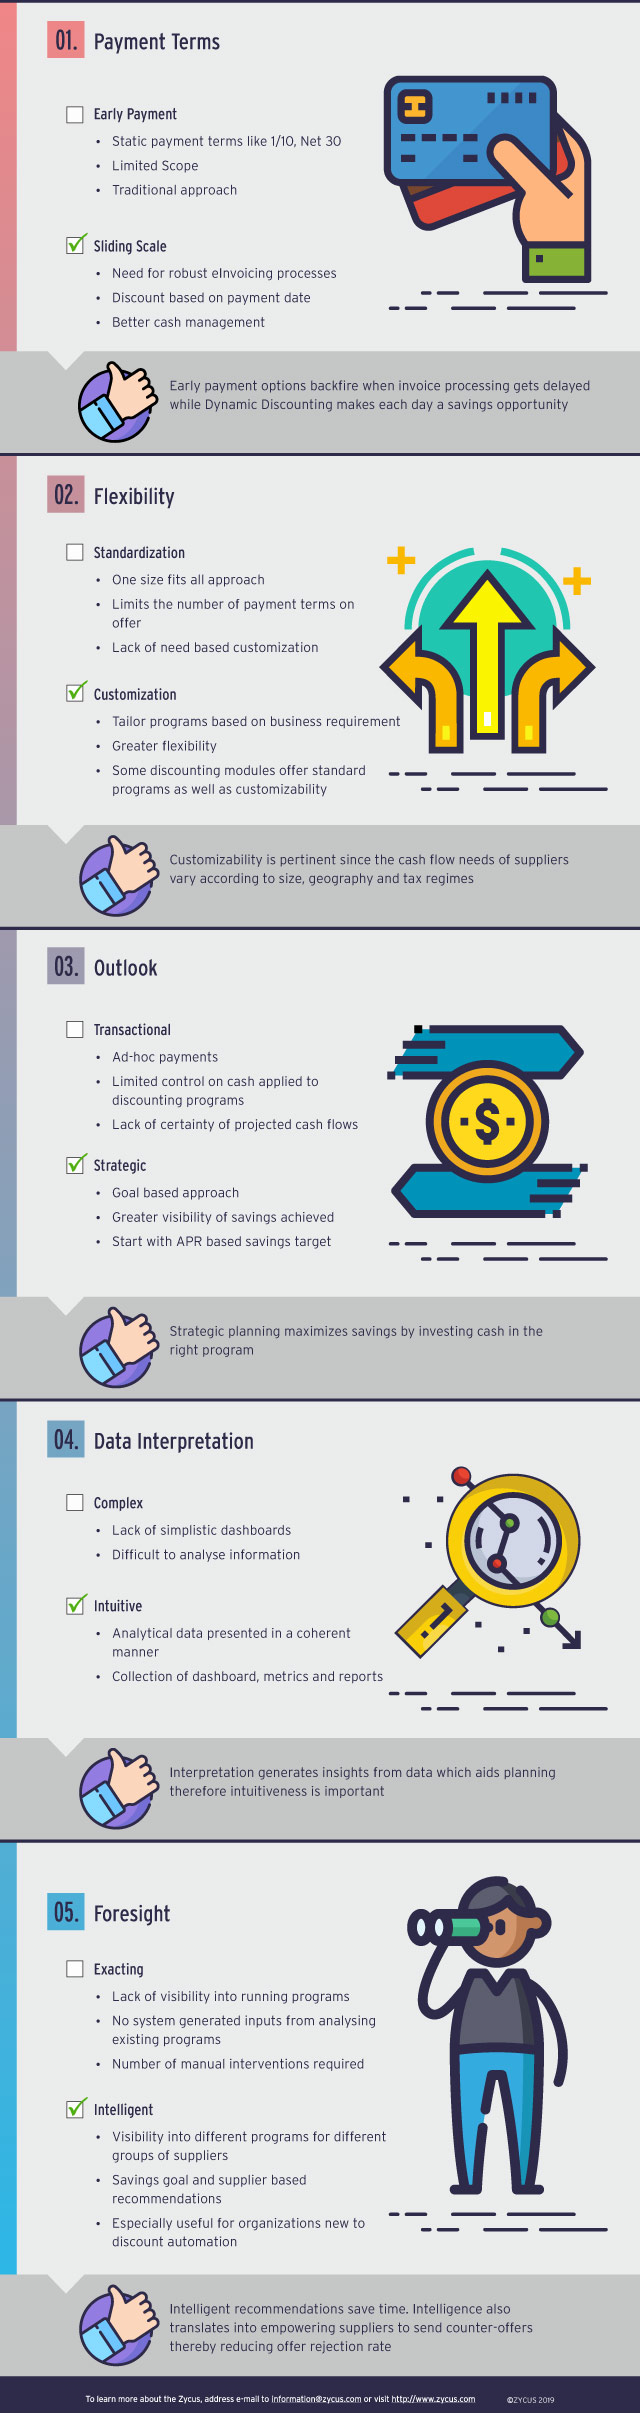 Discounting Program Infographic